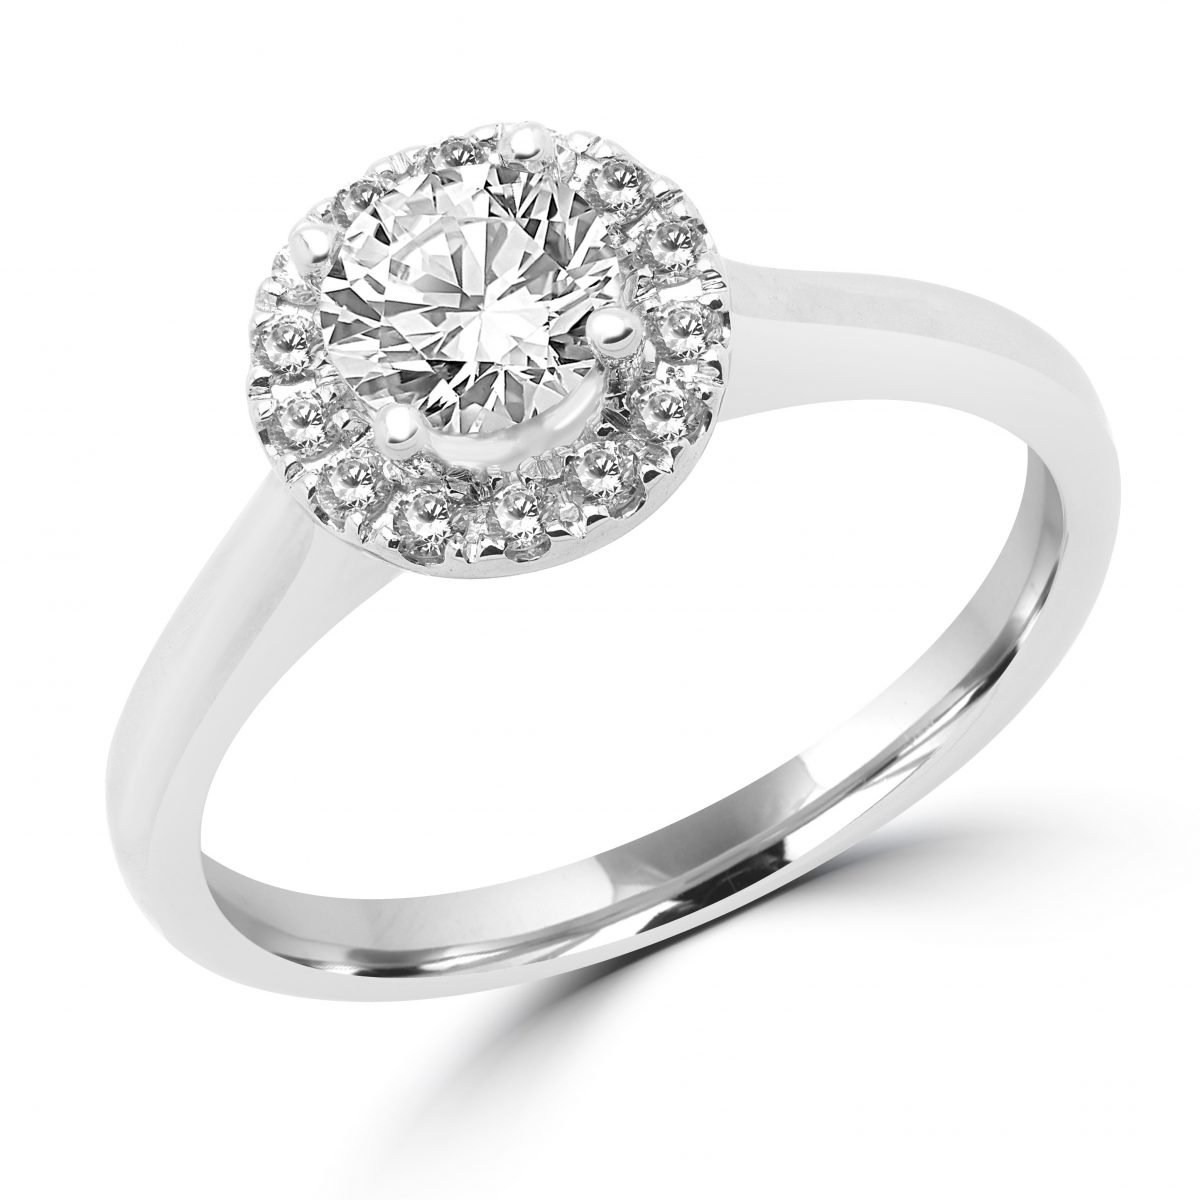 Eternal love halo engagement ring 0.67 (ctw) 14k white gold